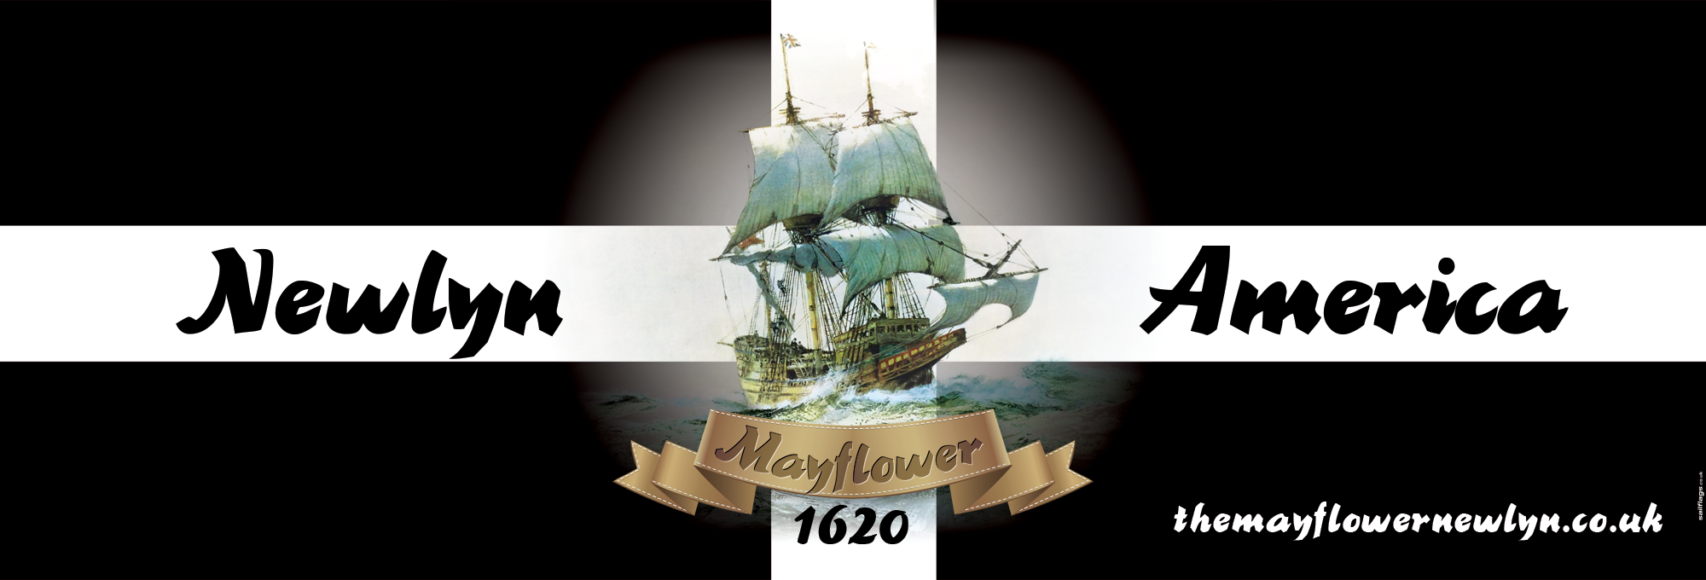 Mayflower Newlyn